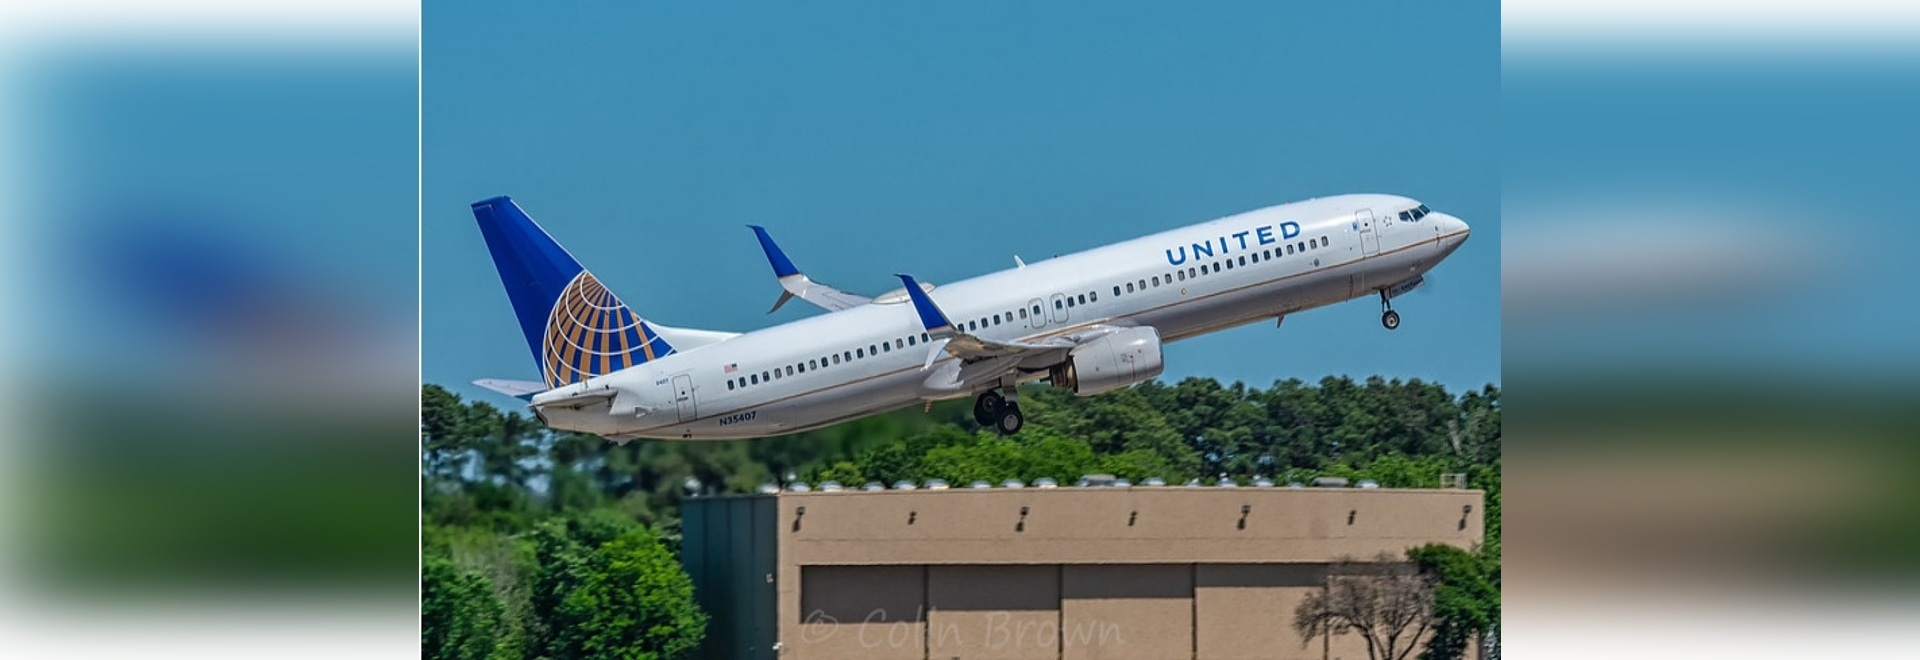 United plans to graduate around 300 students from the United Aviate Academy in its first year of operation. Credit: Colin Brown Photography.